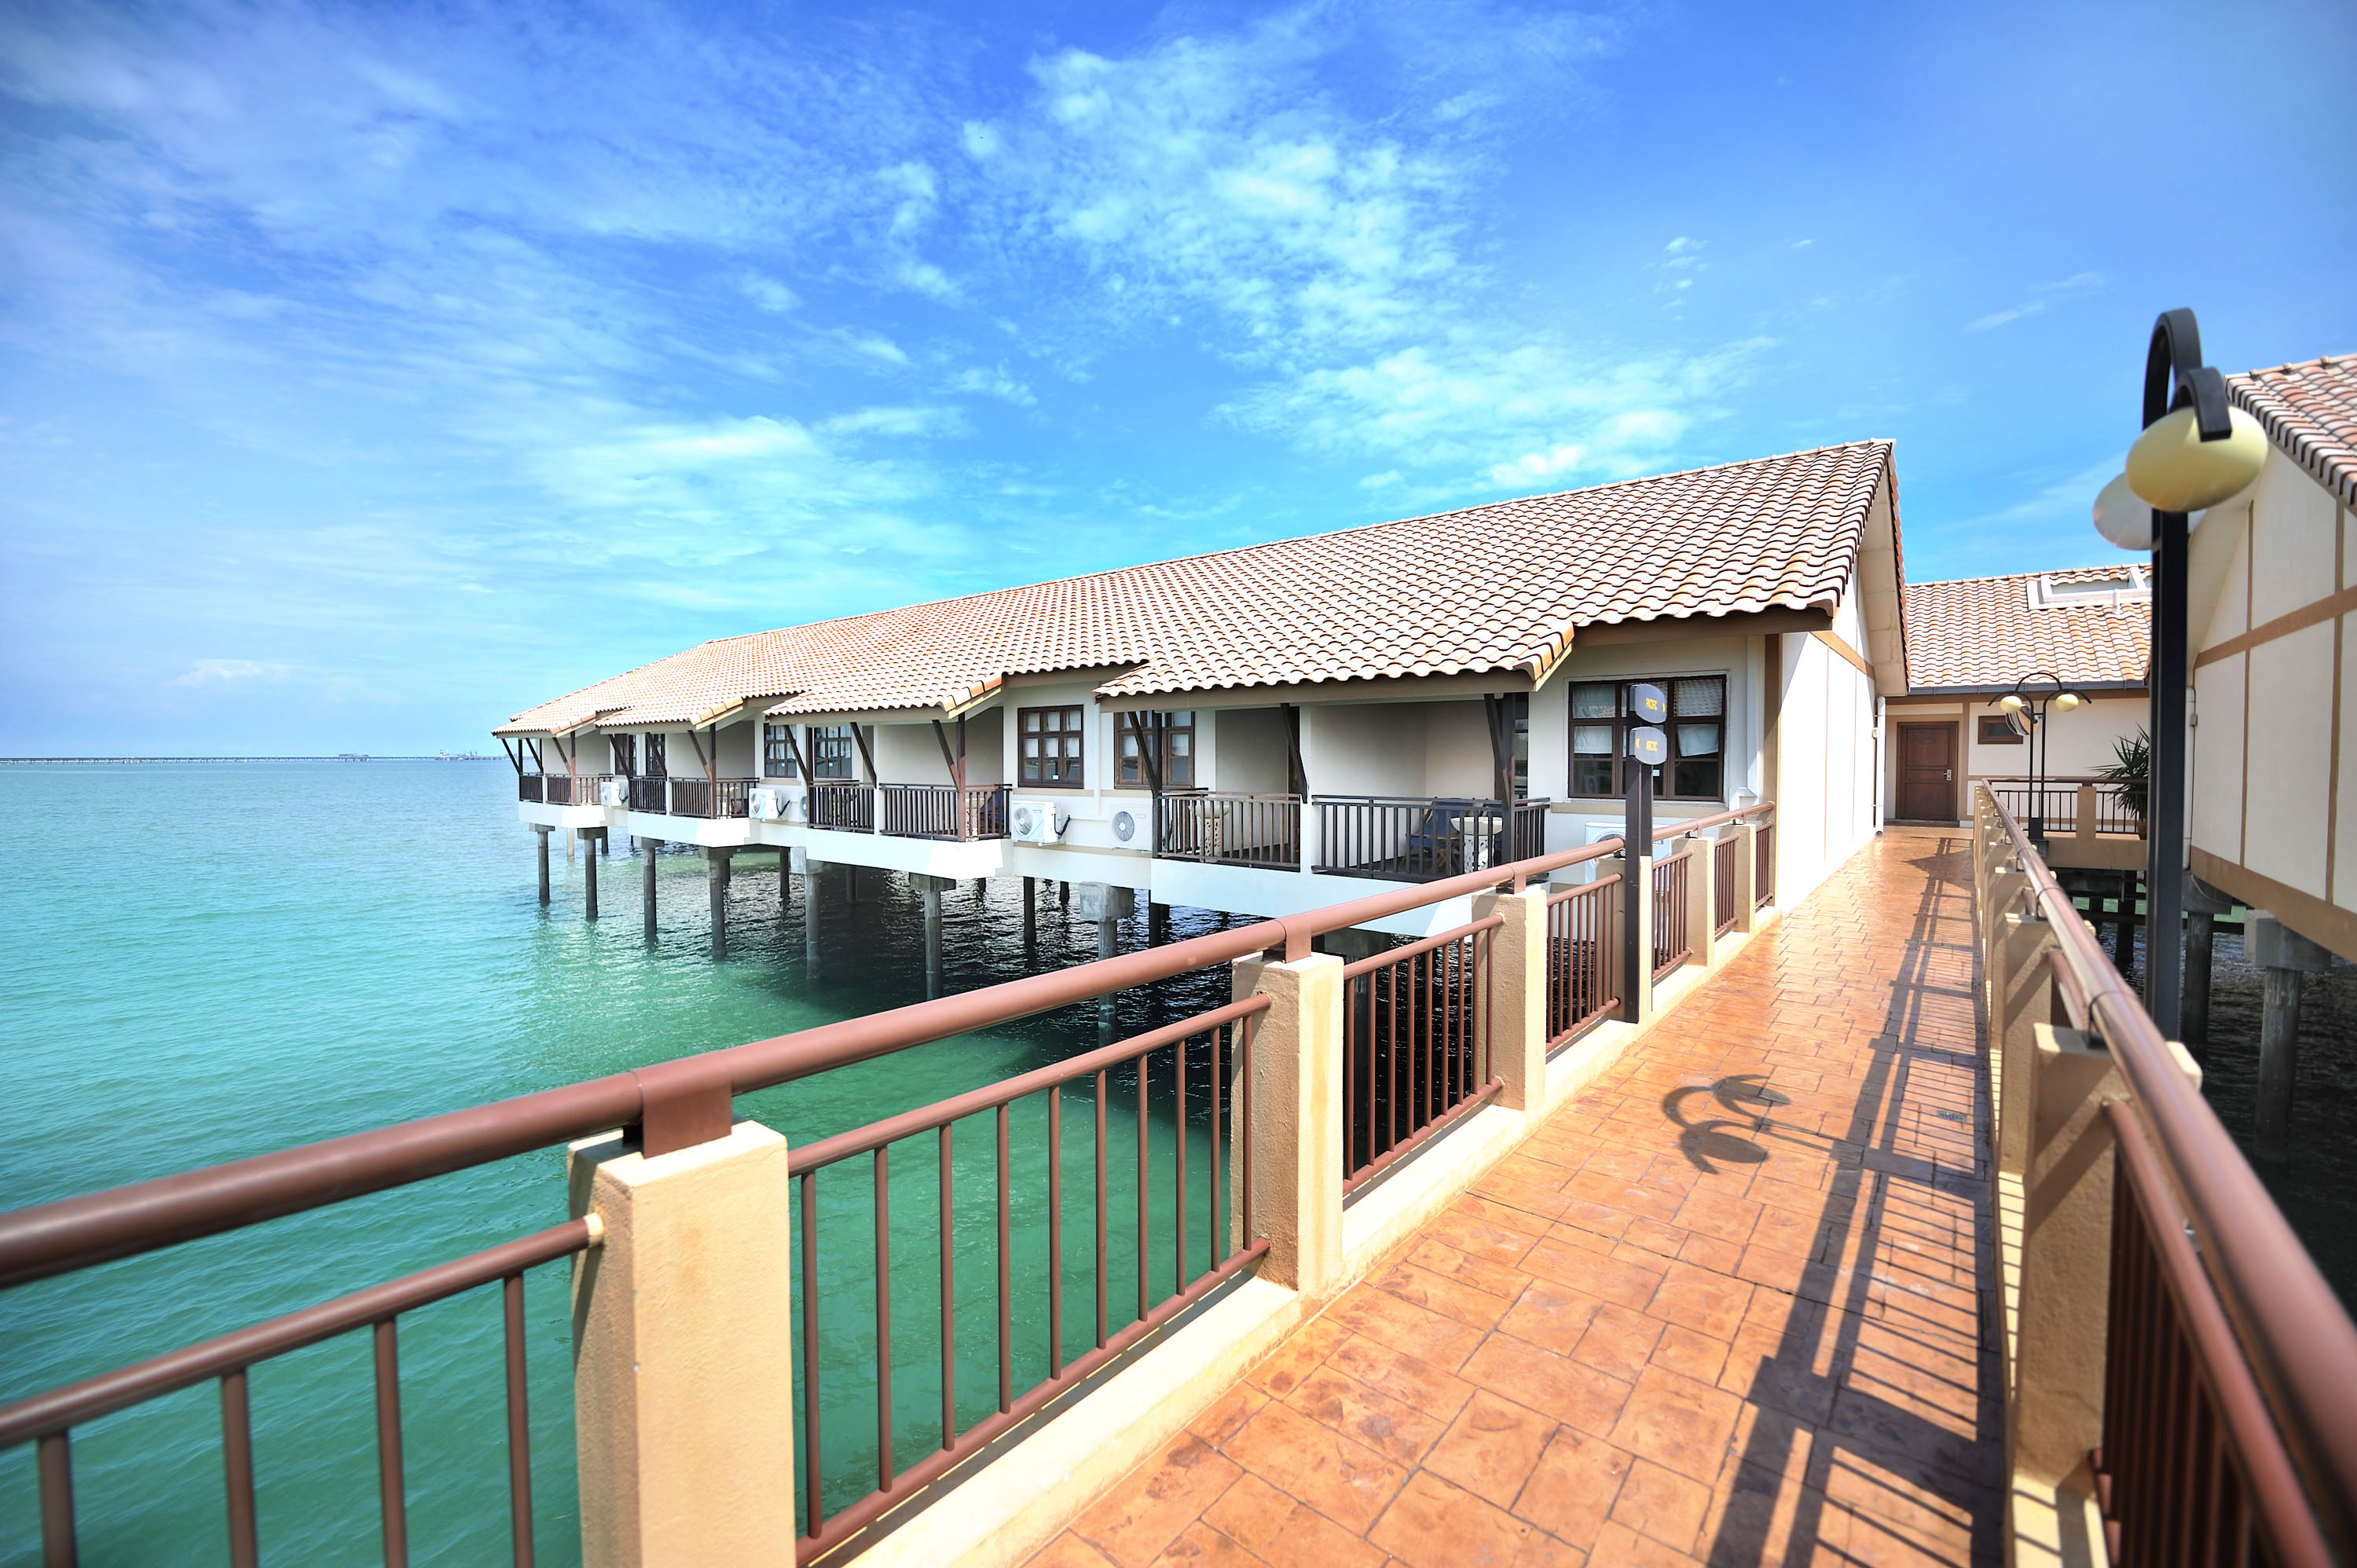 Water Chalet View at Lexis Port Dickson